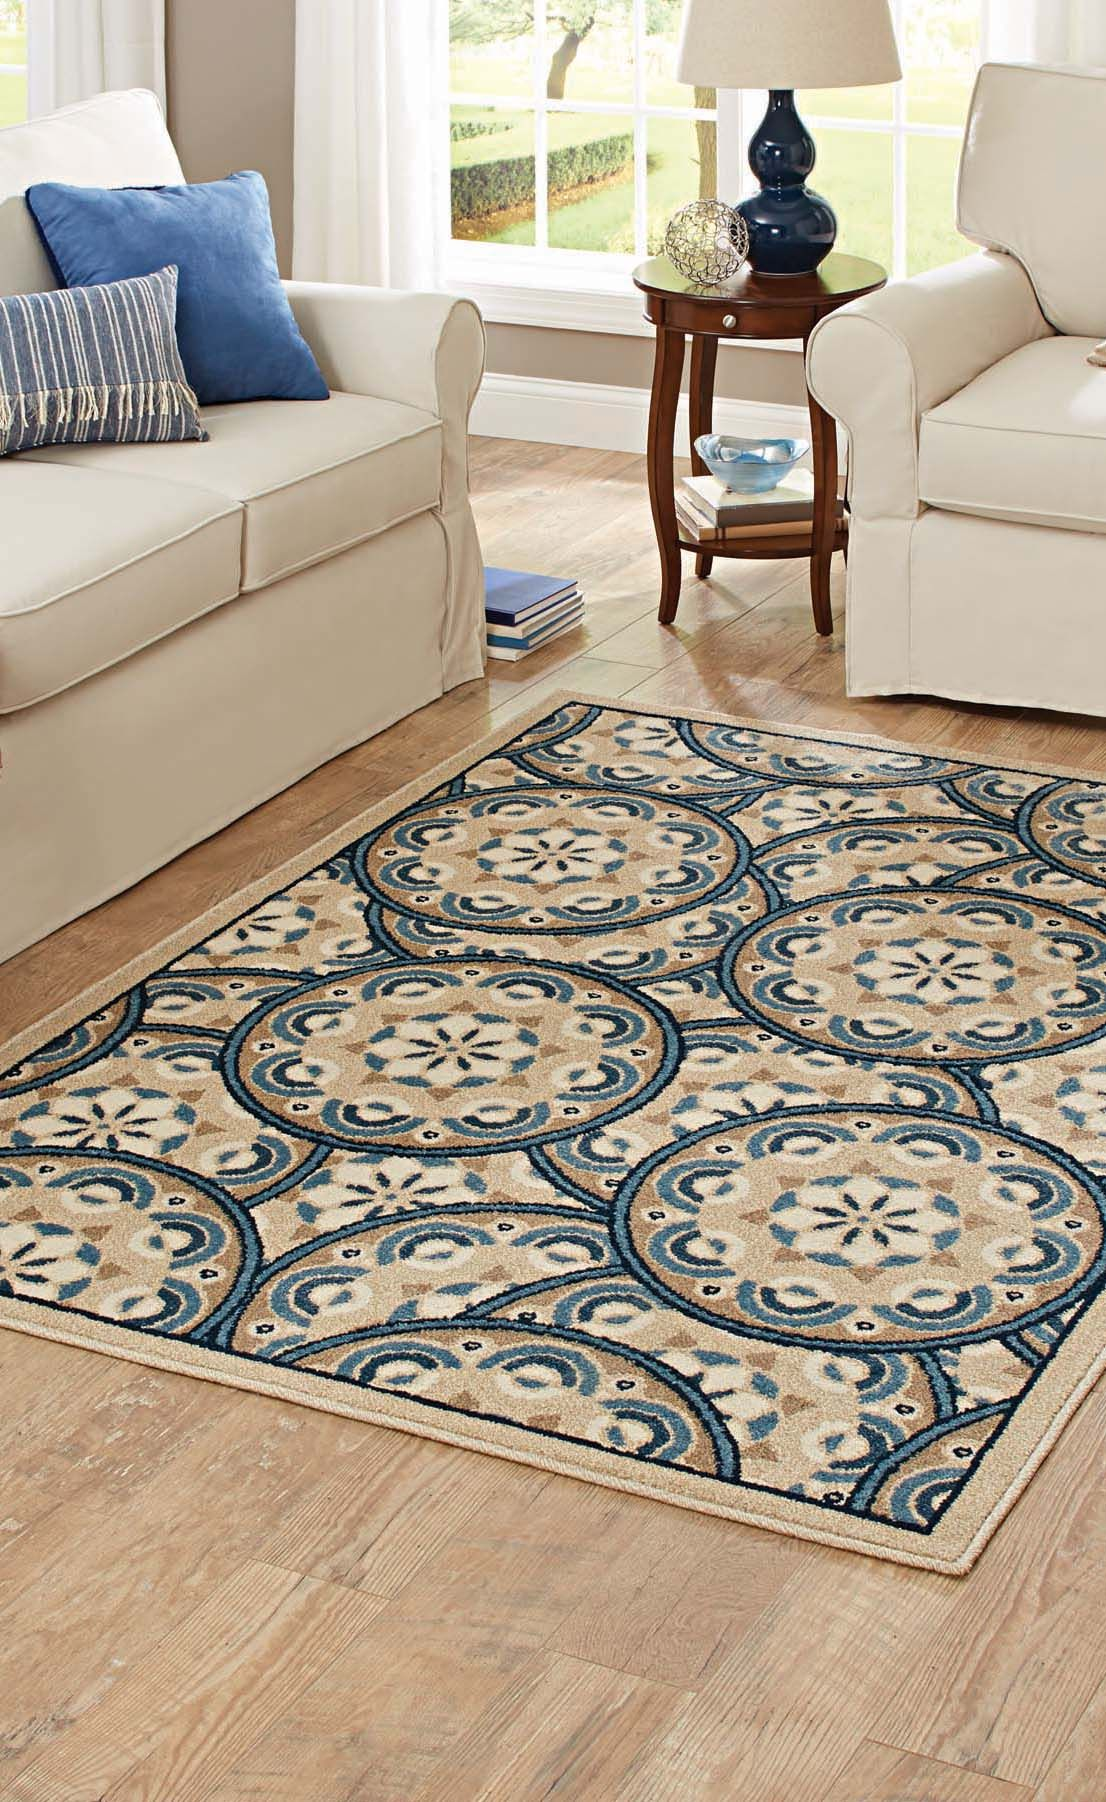 Home Better Homes Gardens Home Depot Rugs Better Homes